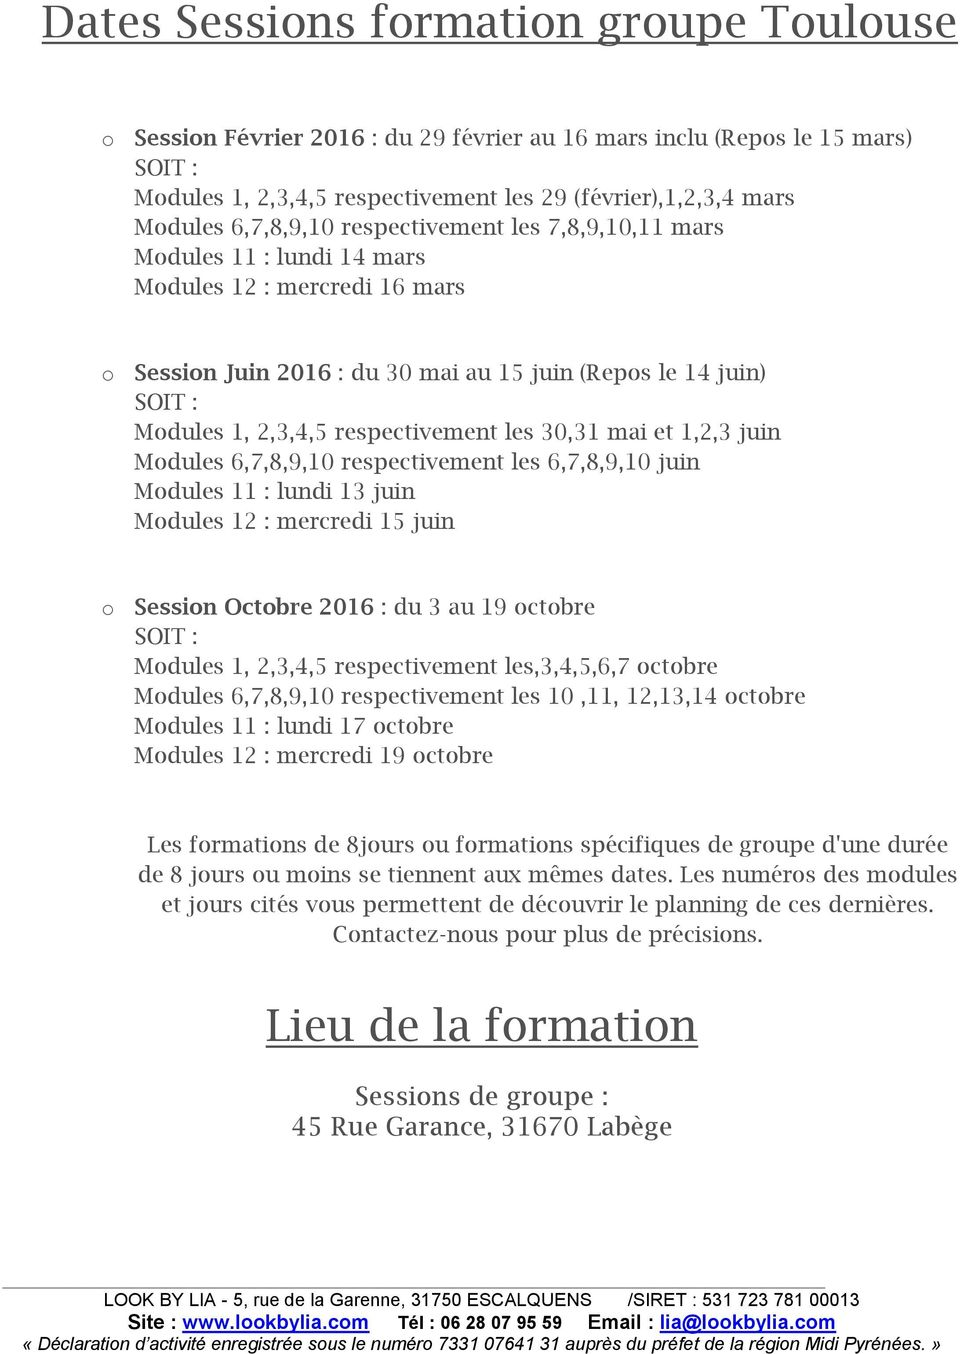 respectivement les 30,31 mai et 1,2,3 juin Modules 6,7,8,9,10 respectivement les 6,7,8,9,10 juin Modules 11 : lundi 13 juin Modules 12 : mercredi 15 juin o Session Octobre 2016 : du 3 au 19 octobre